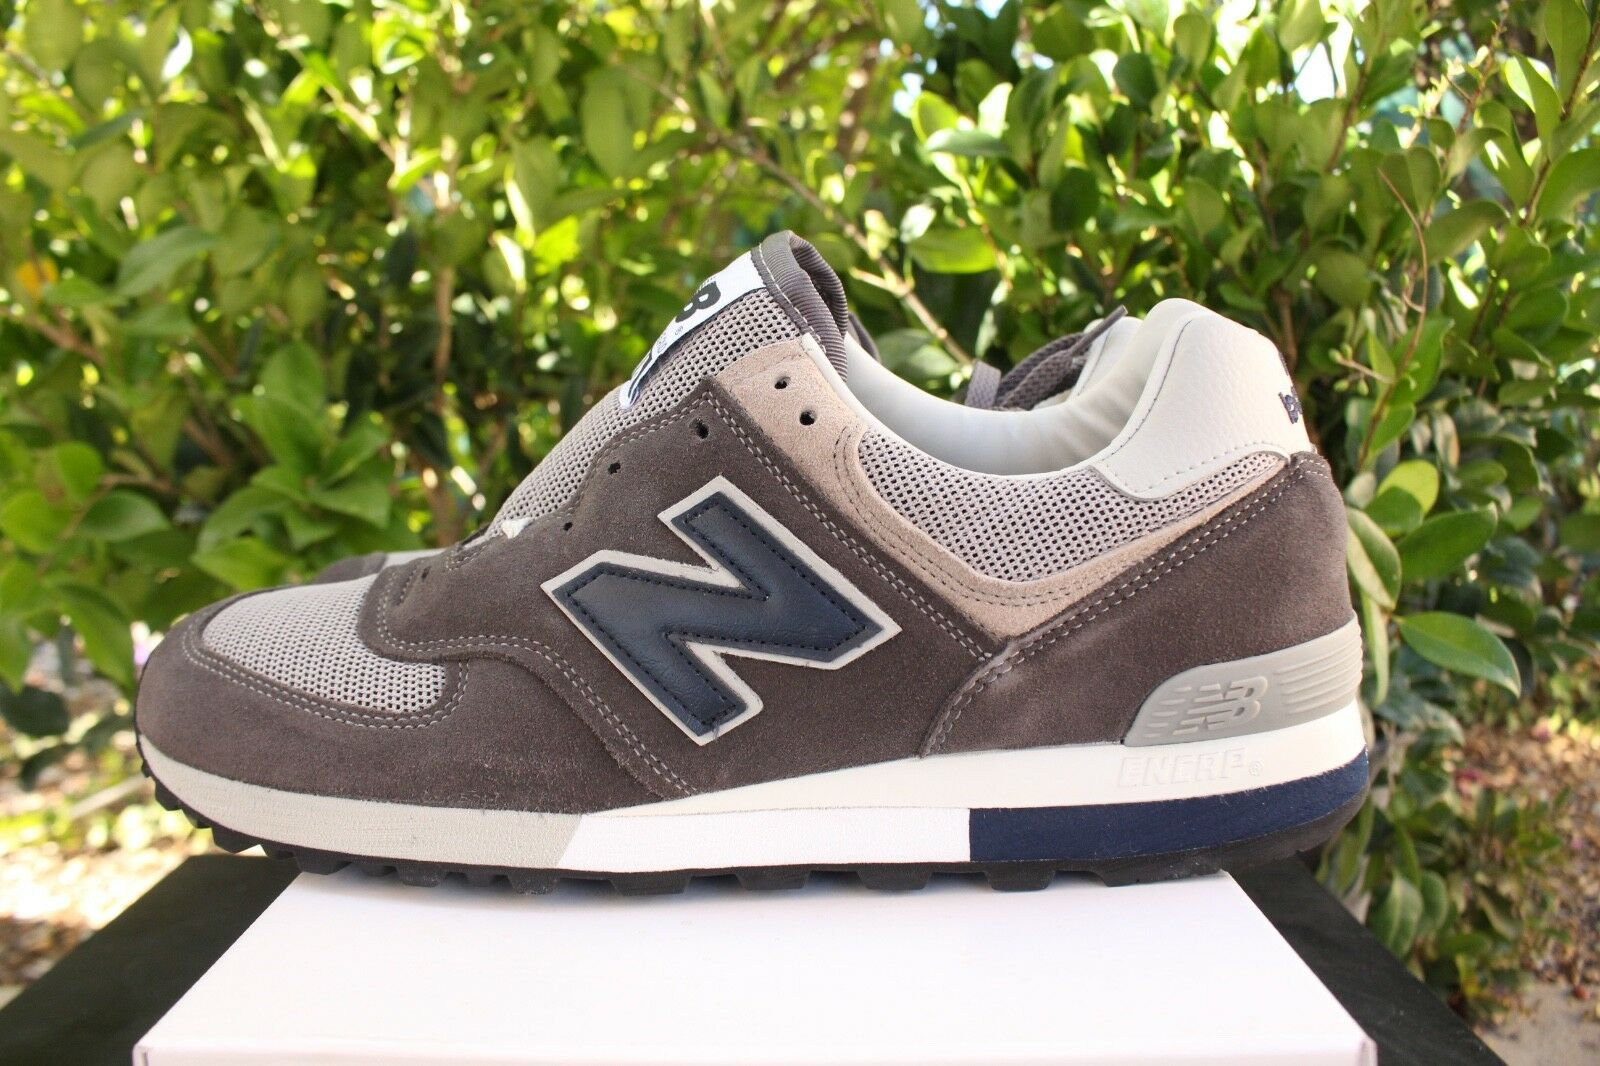 NEW BALANCE 576 MADE IN THESZ 8 Gris NAVY Bleu Blanc OM576OGG